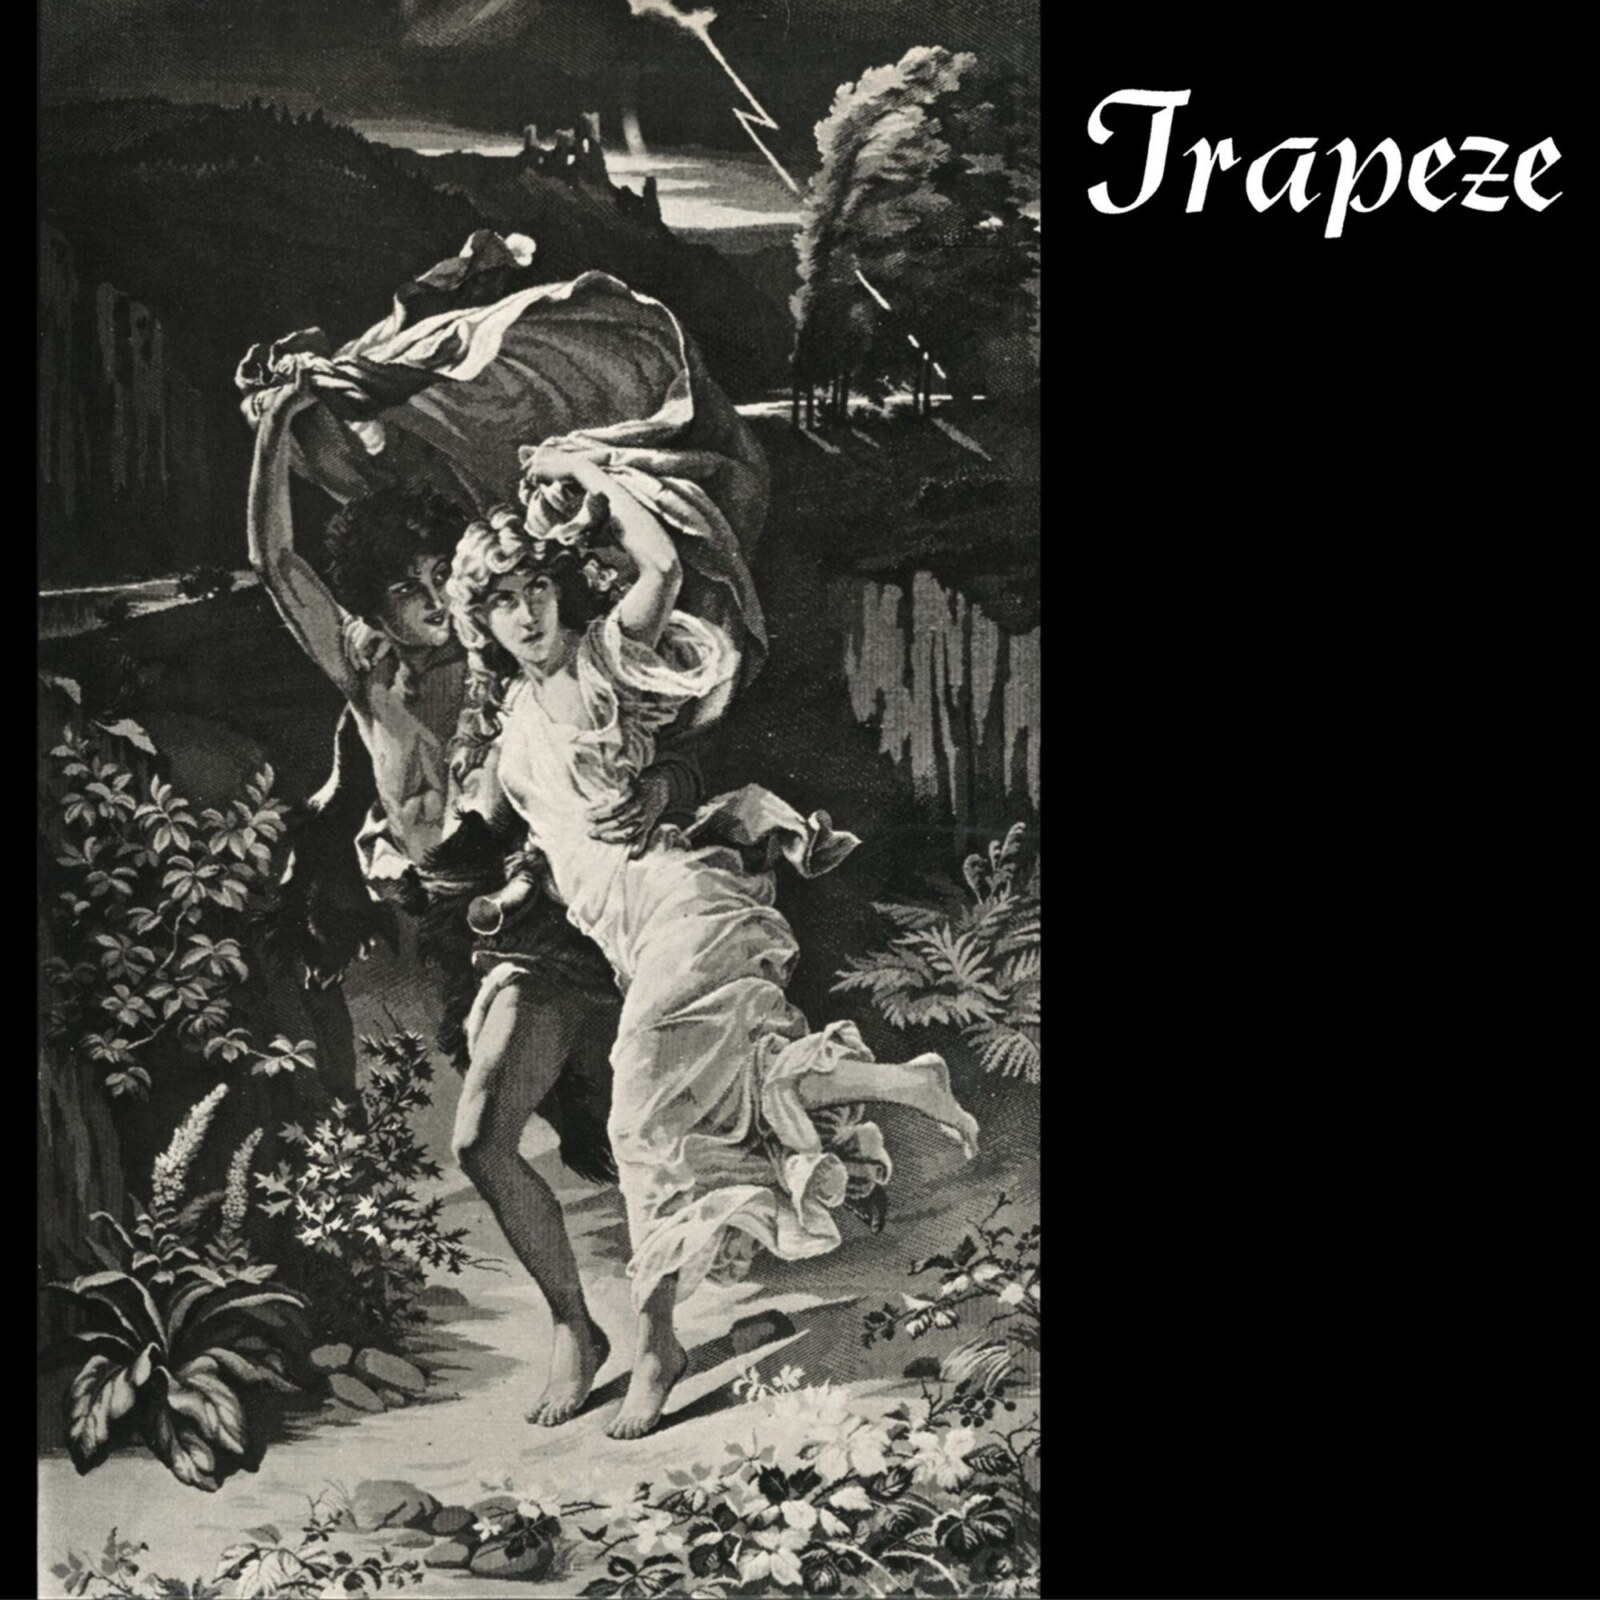 Trapeze - 'Trapeze' (1970) - It's Psychedelic Baby Magazine